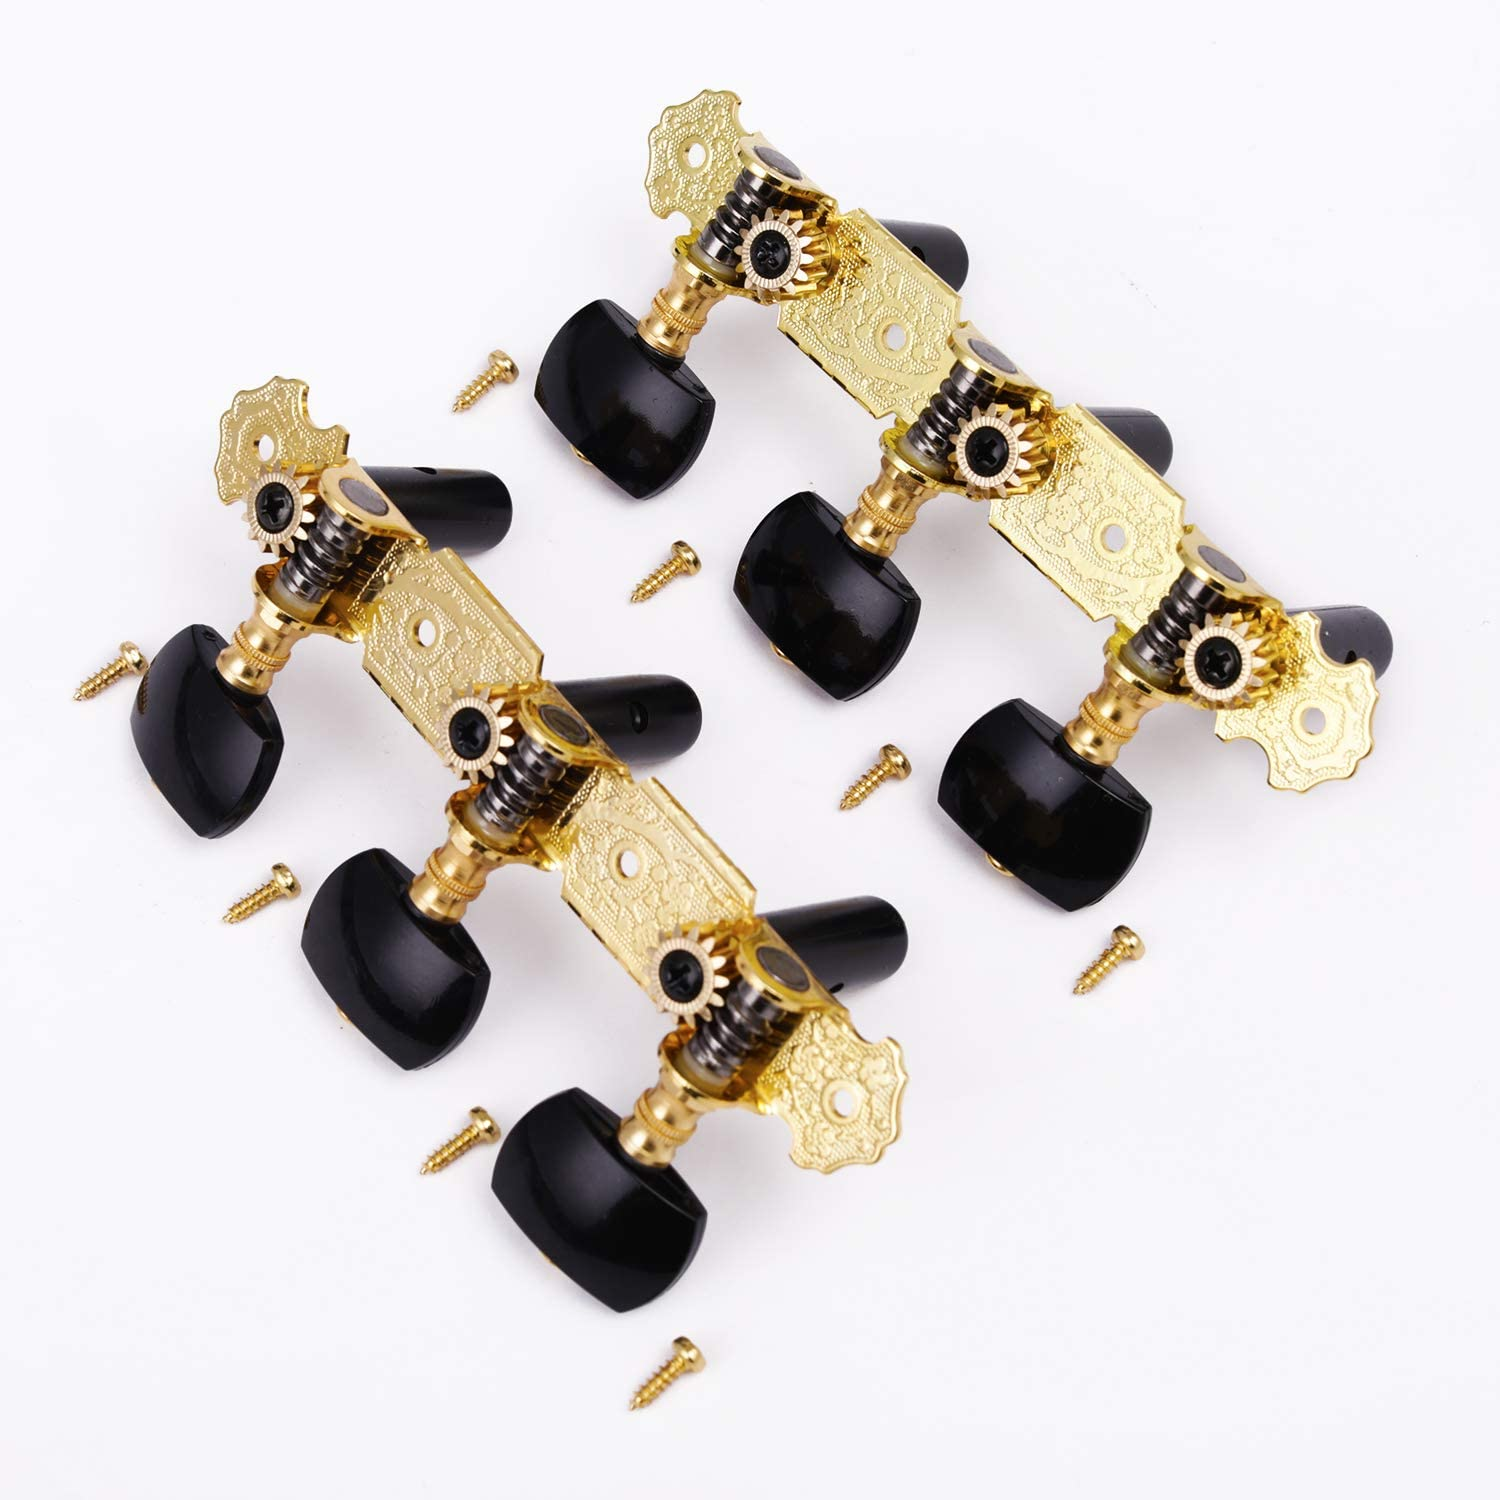 Alice Classical Super Special SALE Genuine held Guitar String Tuning Keys 2pcs LR Pegs